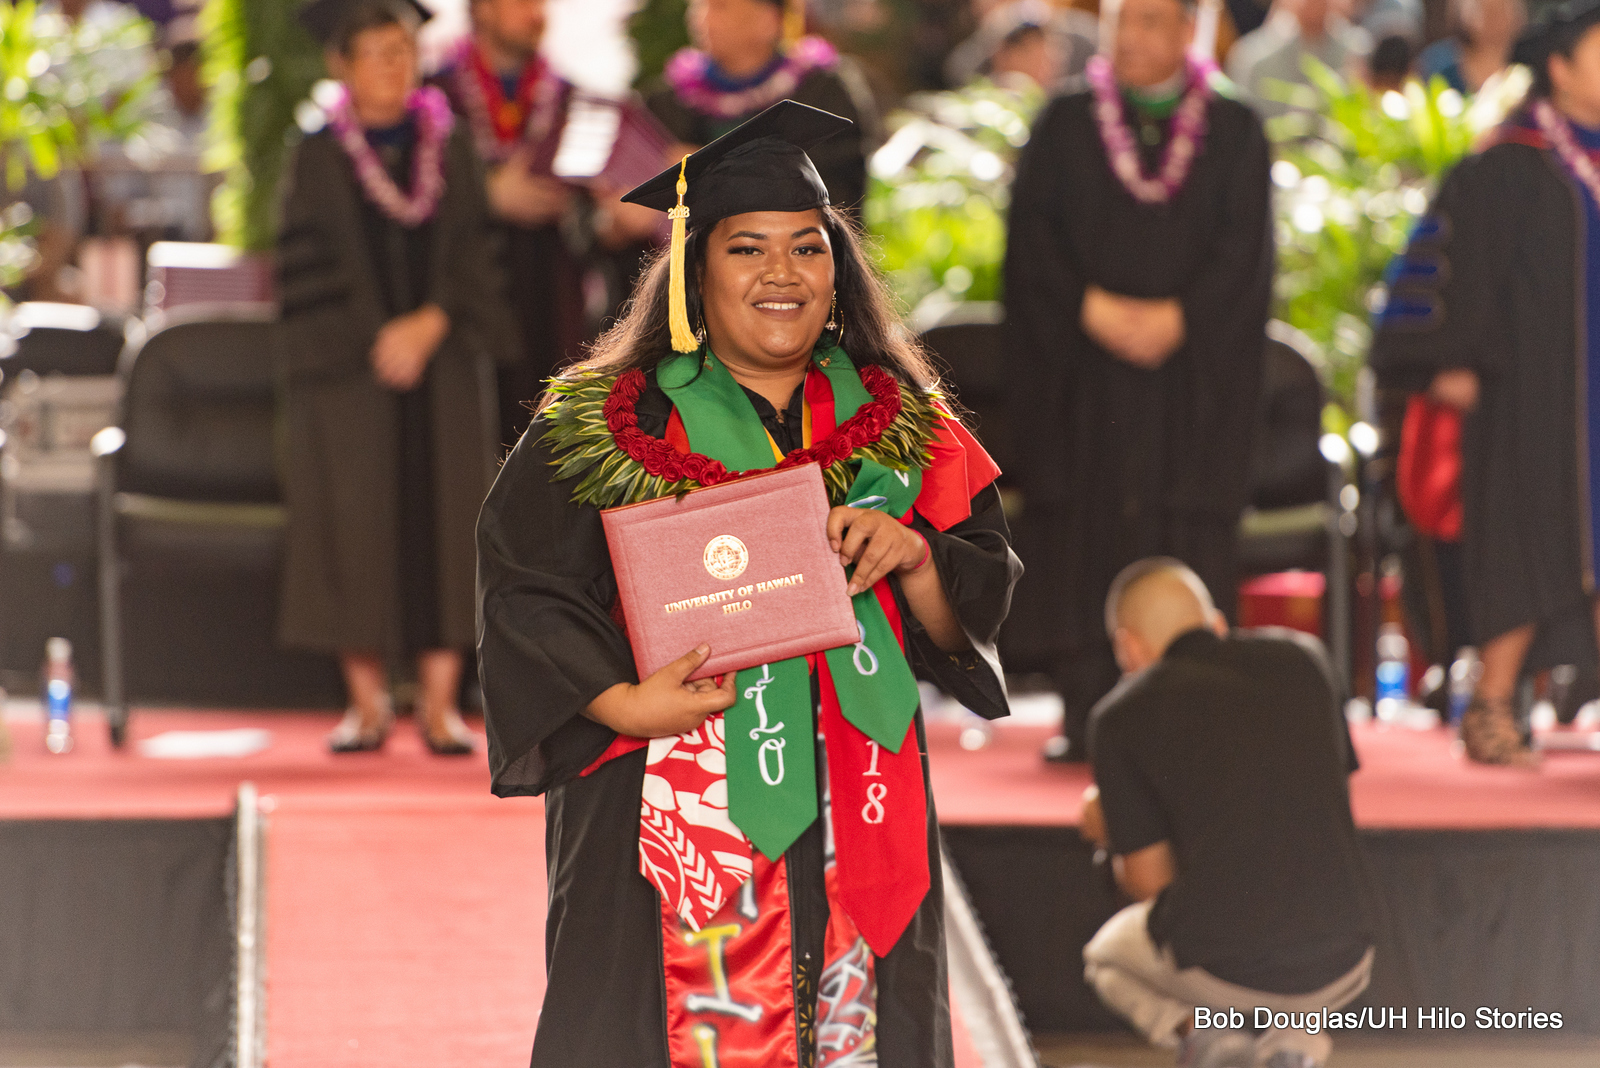 Graduate coming down from stage holding her diploma. She wears a green sash, red sashes, and lei.